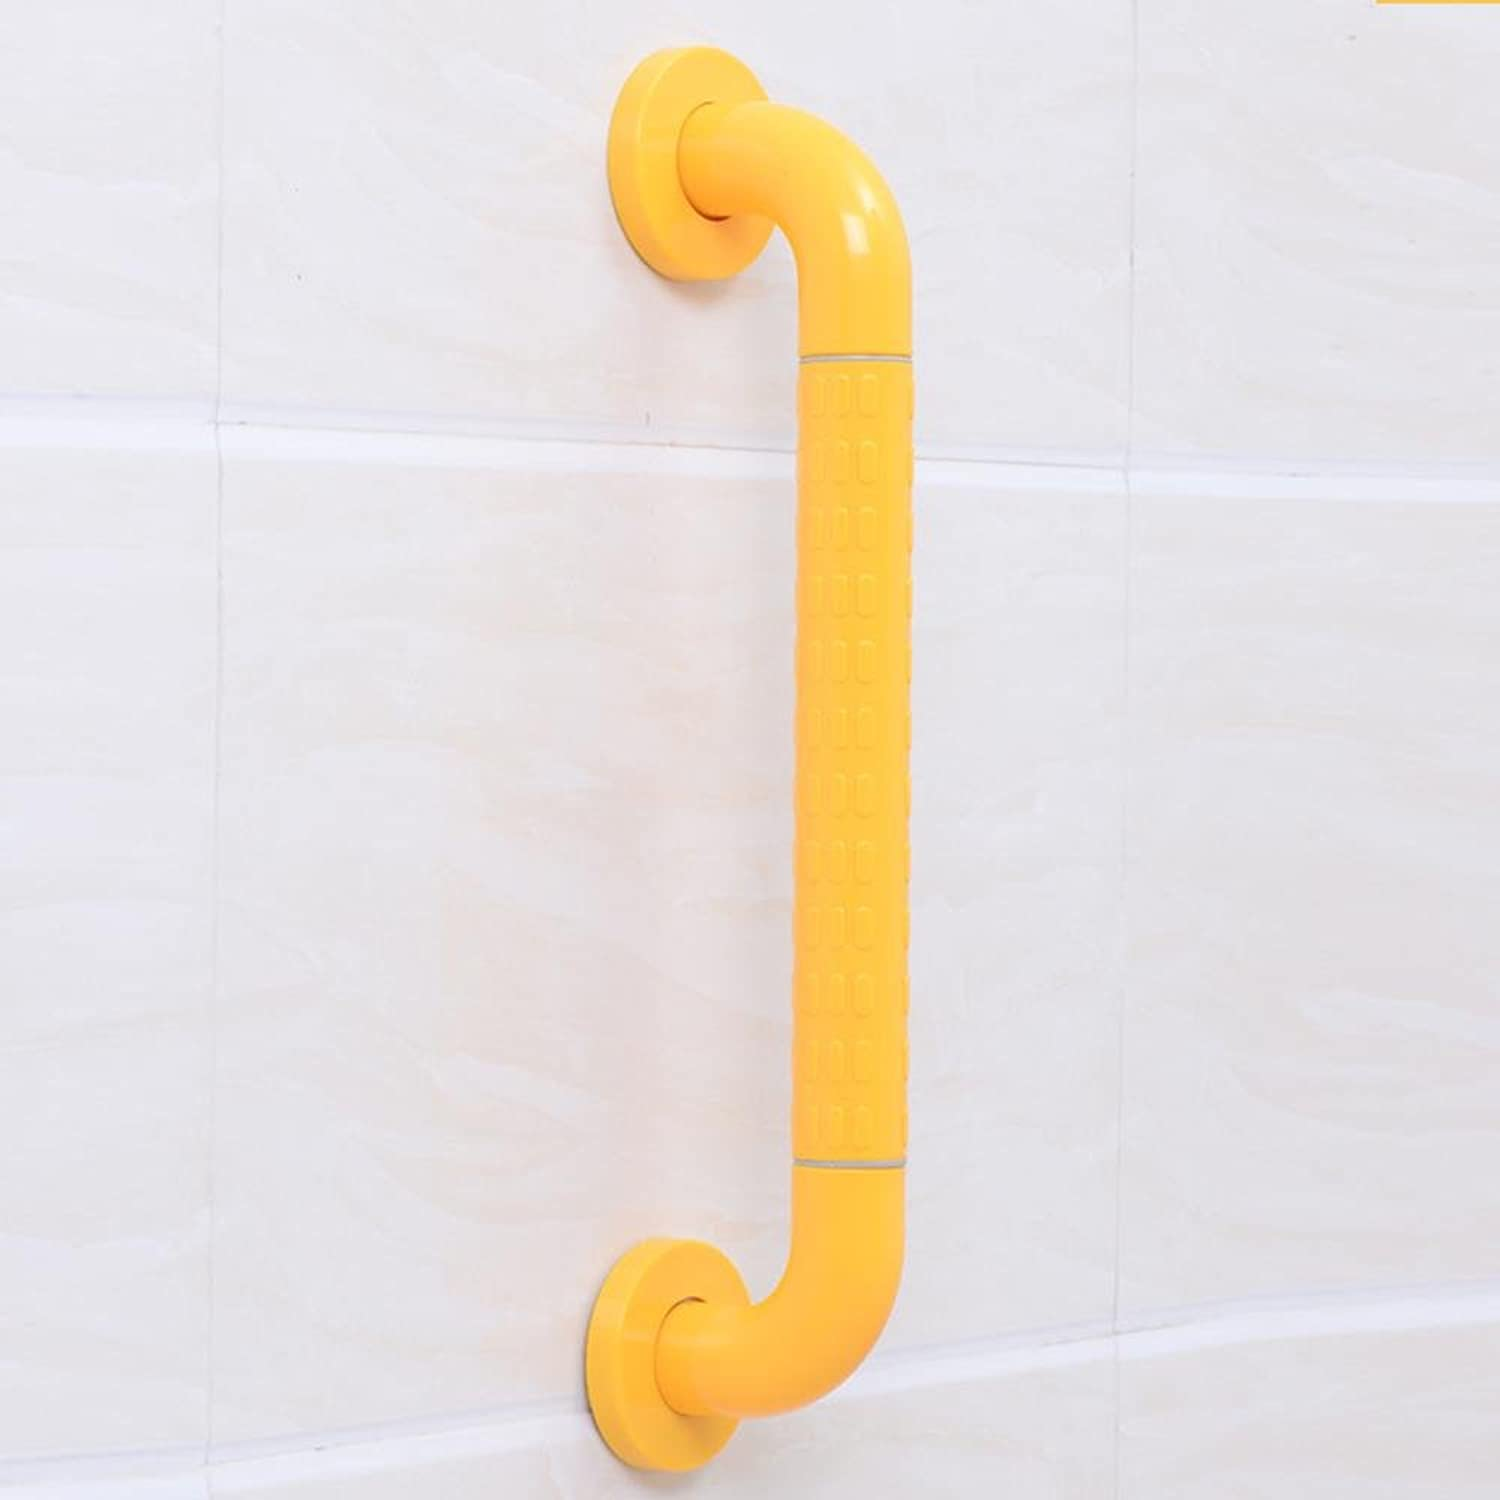 KHSKX Lined handrails bathroom safety skid against the wall handrail, disabled toilets , Yellow